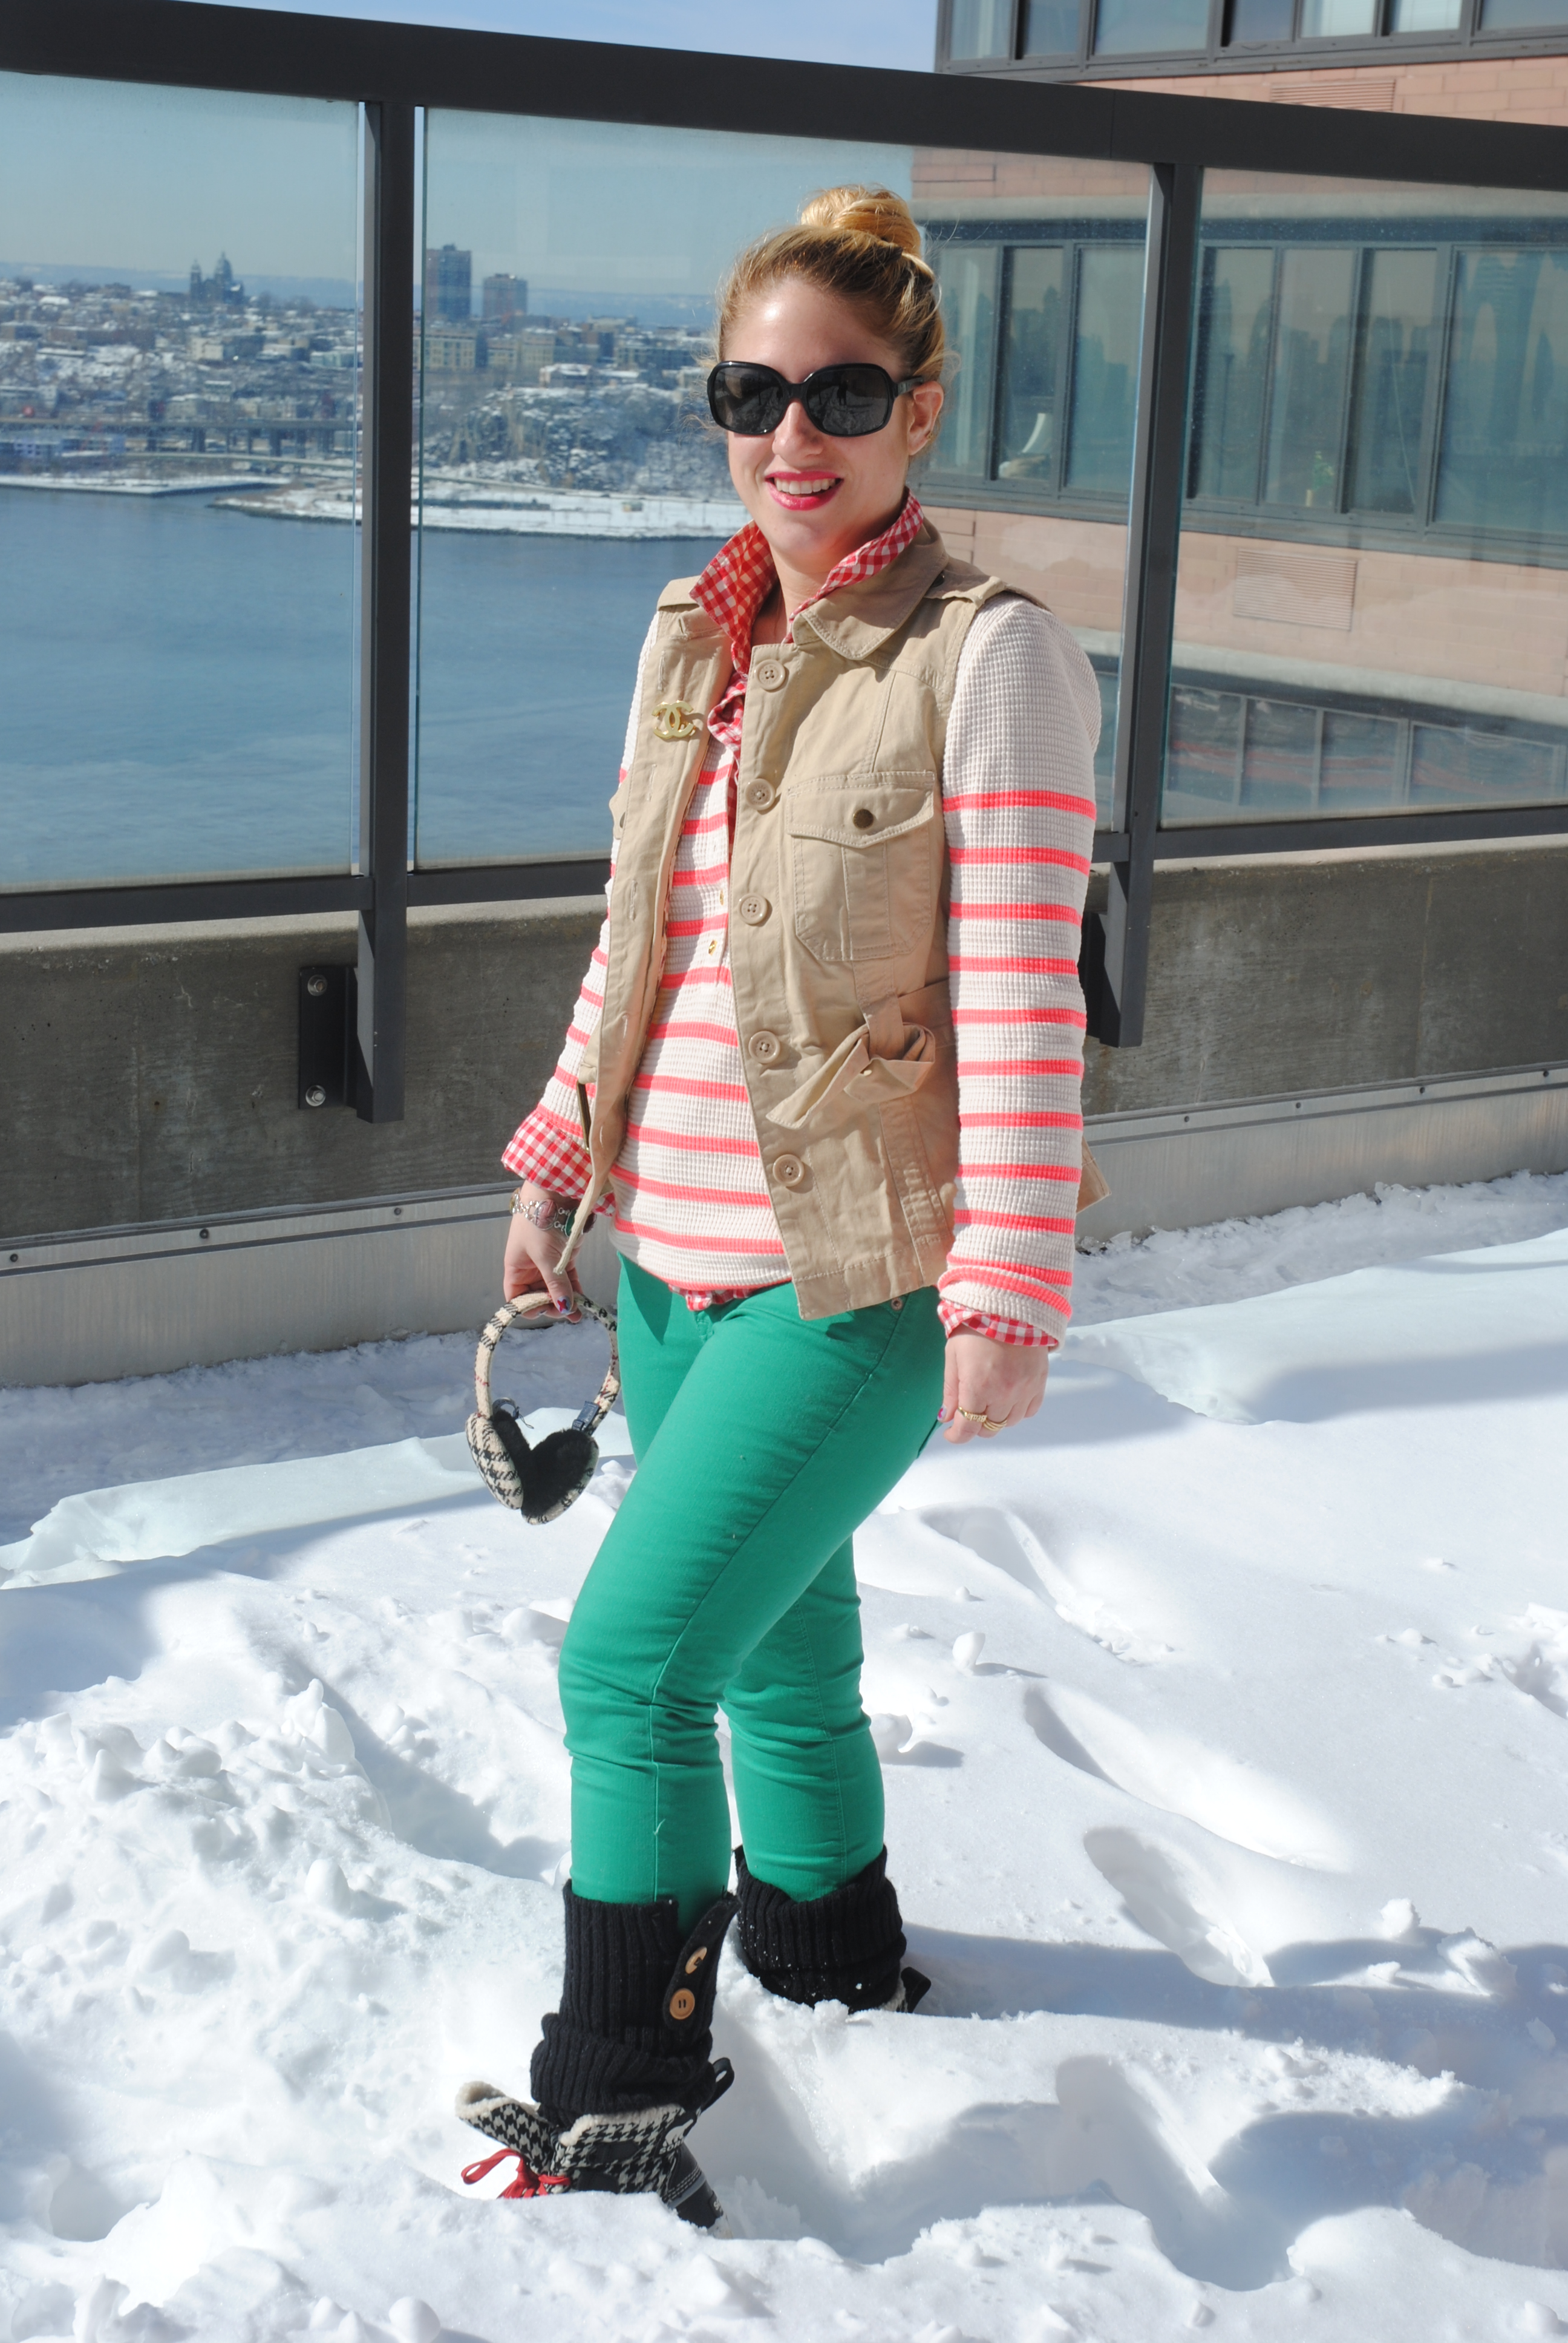 Emerald green jeans, Old Navy $15. Orange striped henley, J crew. gingham shirt under, Old Navy (old, no longer available). Earmuffs, Burberry